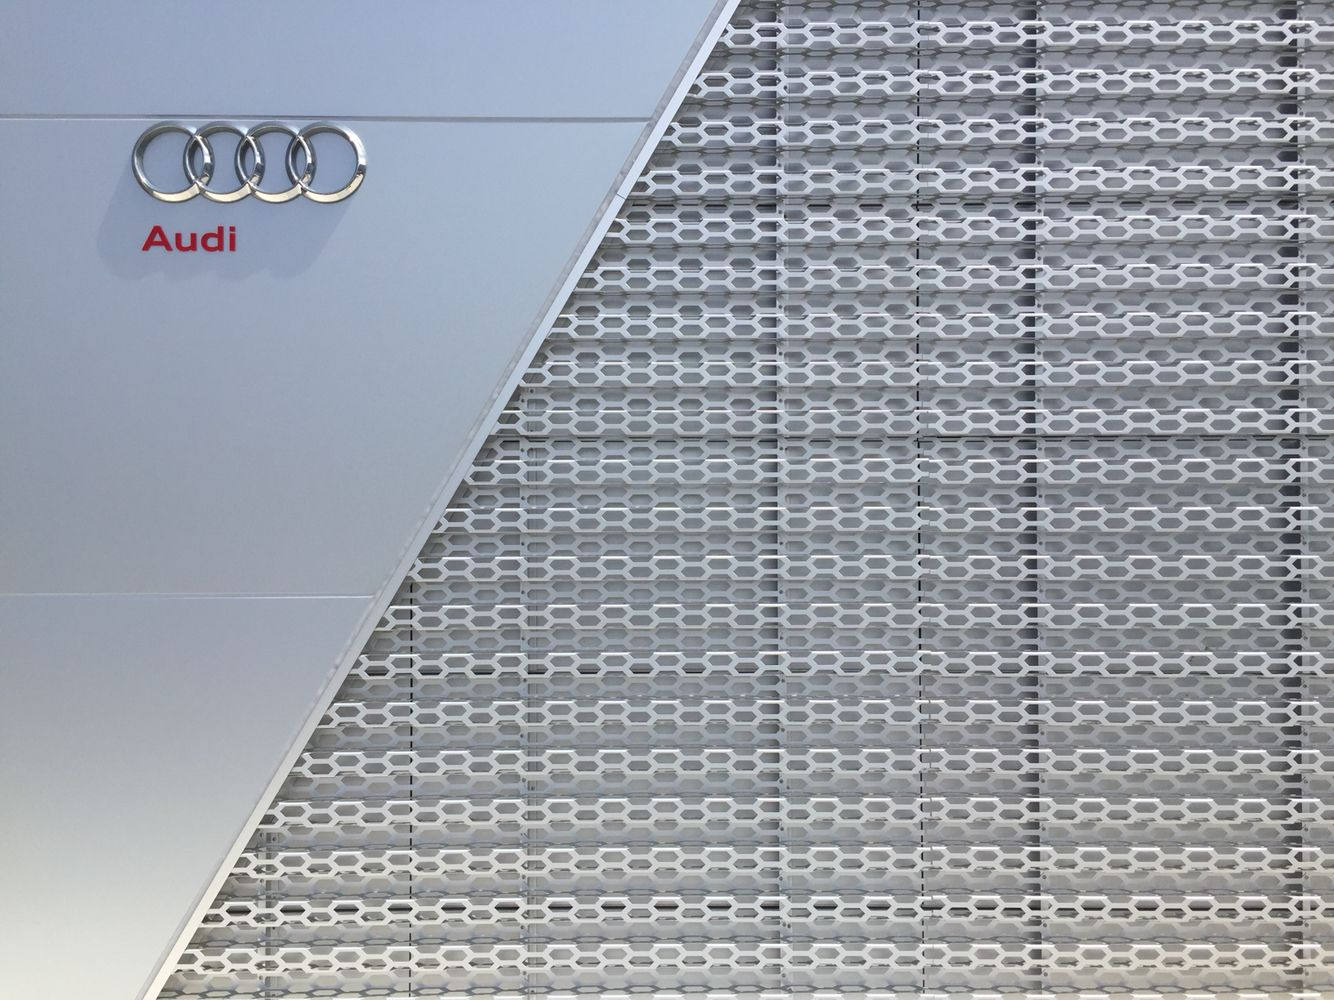 Facade Detail   The Outer Skin Consists Of Bent Aluminium Panels Perforated  With Honeycomb Shaped Holes